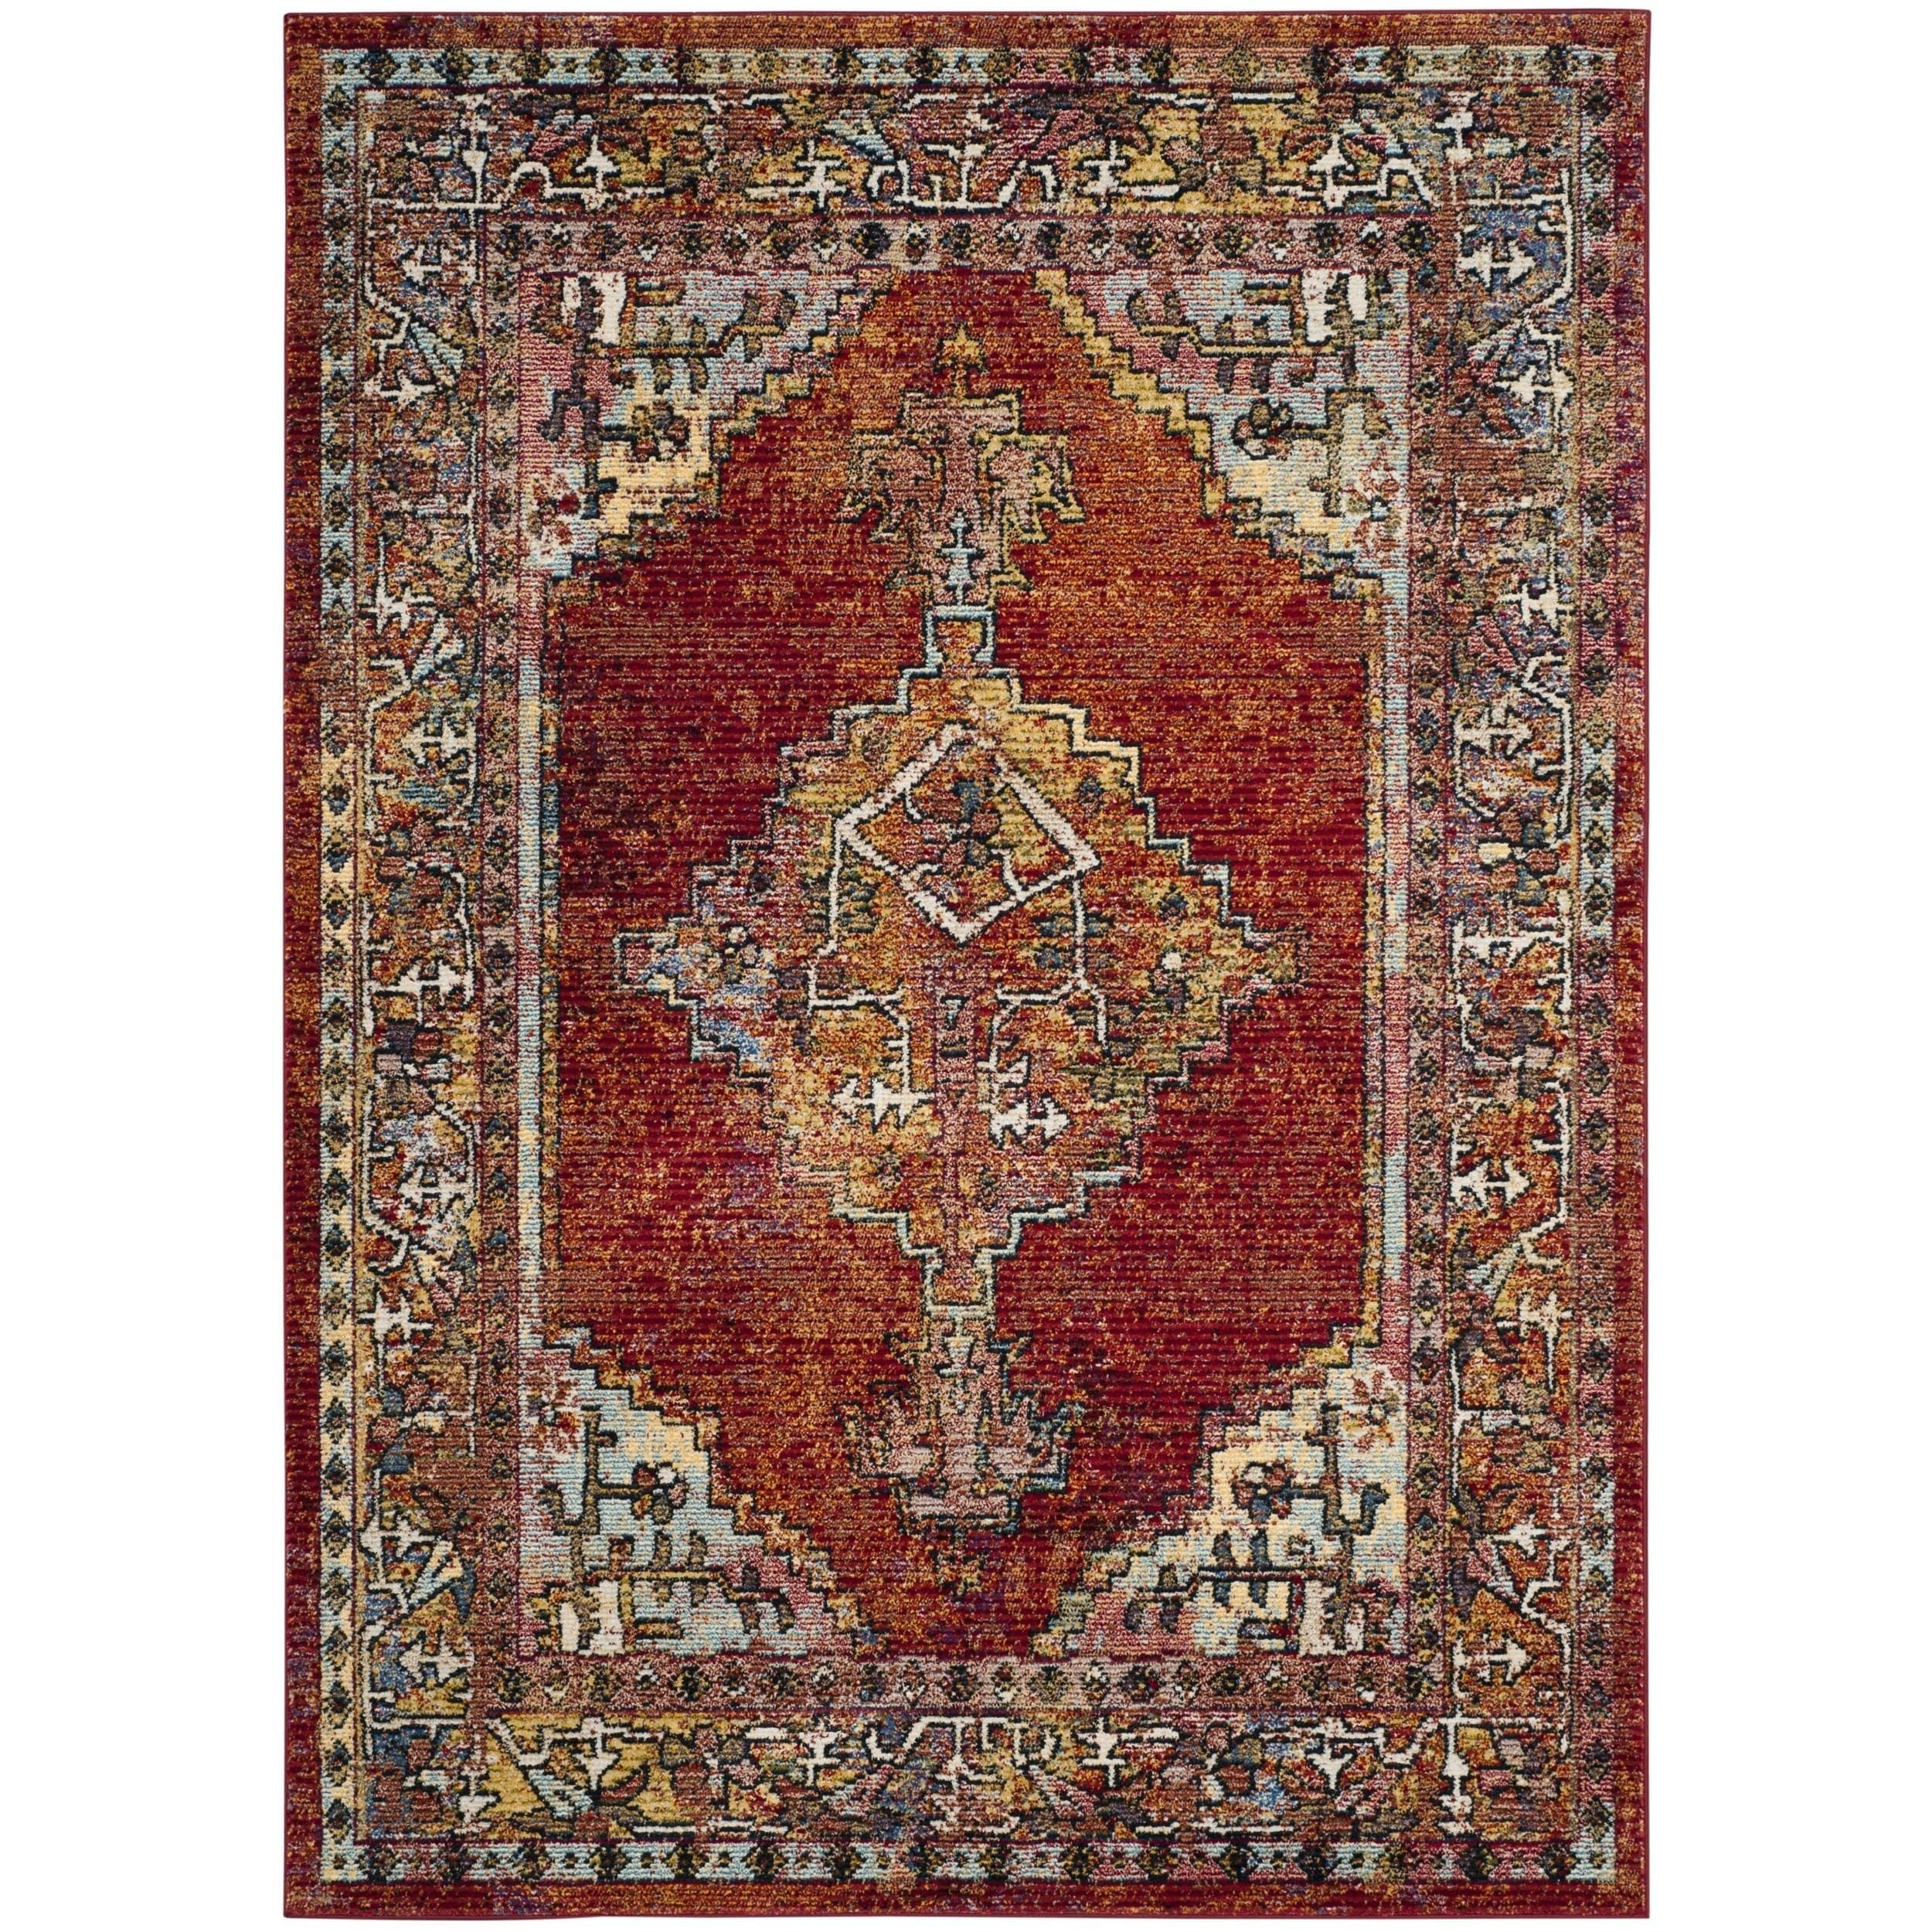 Overstock Com Online Shopping Bedding Furniture Electronics Jewelry Clothing More In 2020 Vibrant Rugs Vintage Area Rugs Polyester Rugs